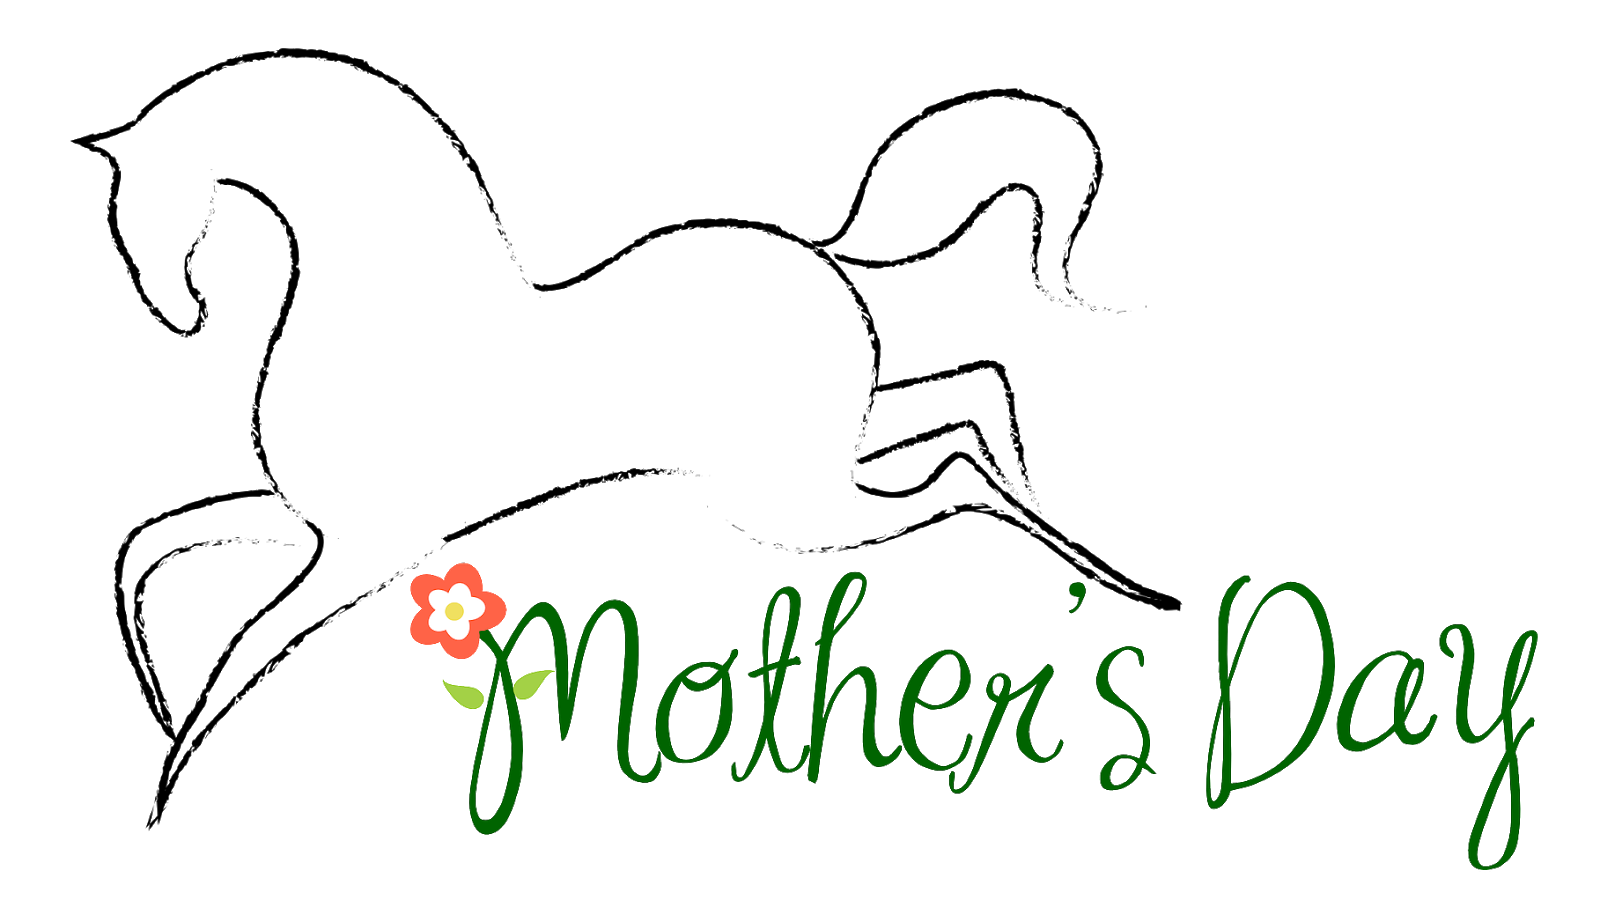 Mothers clipart coloring. Free horse themed mother